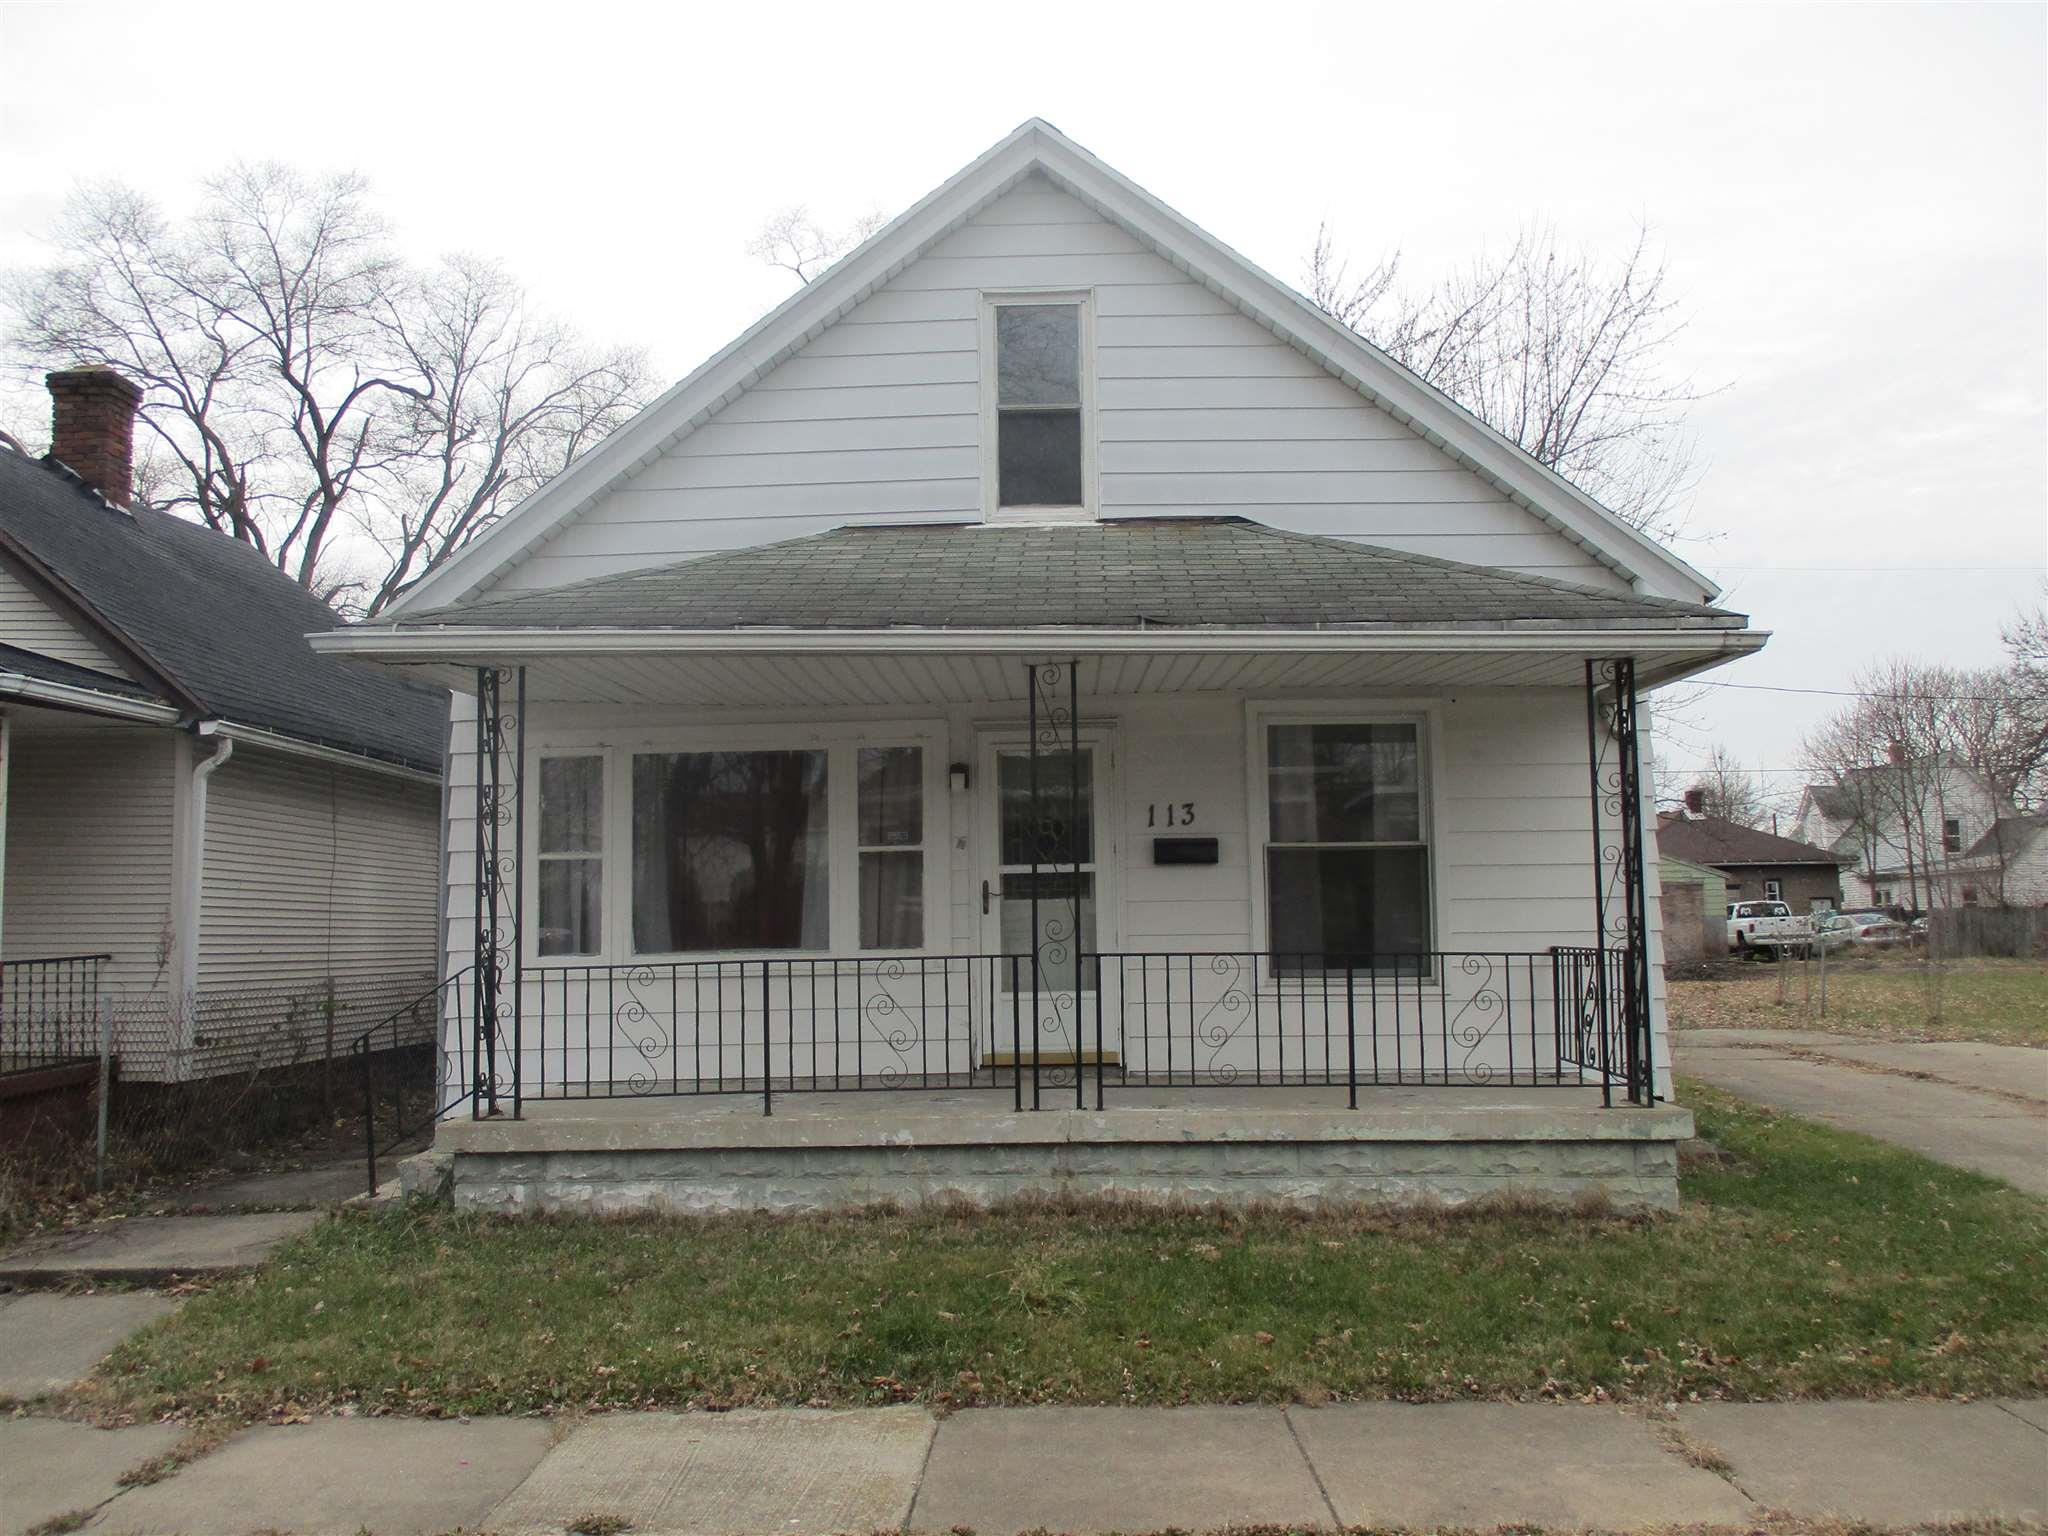 113 Huey South Bend, IN 46628